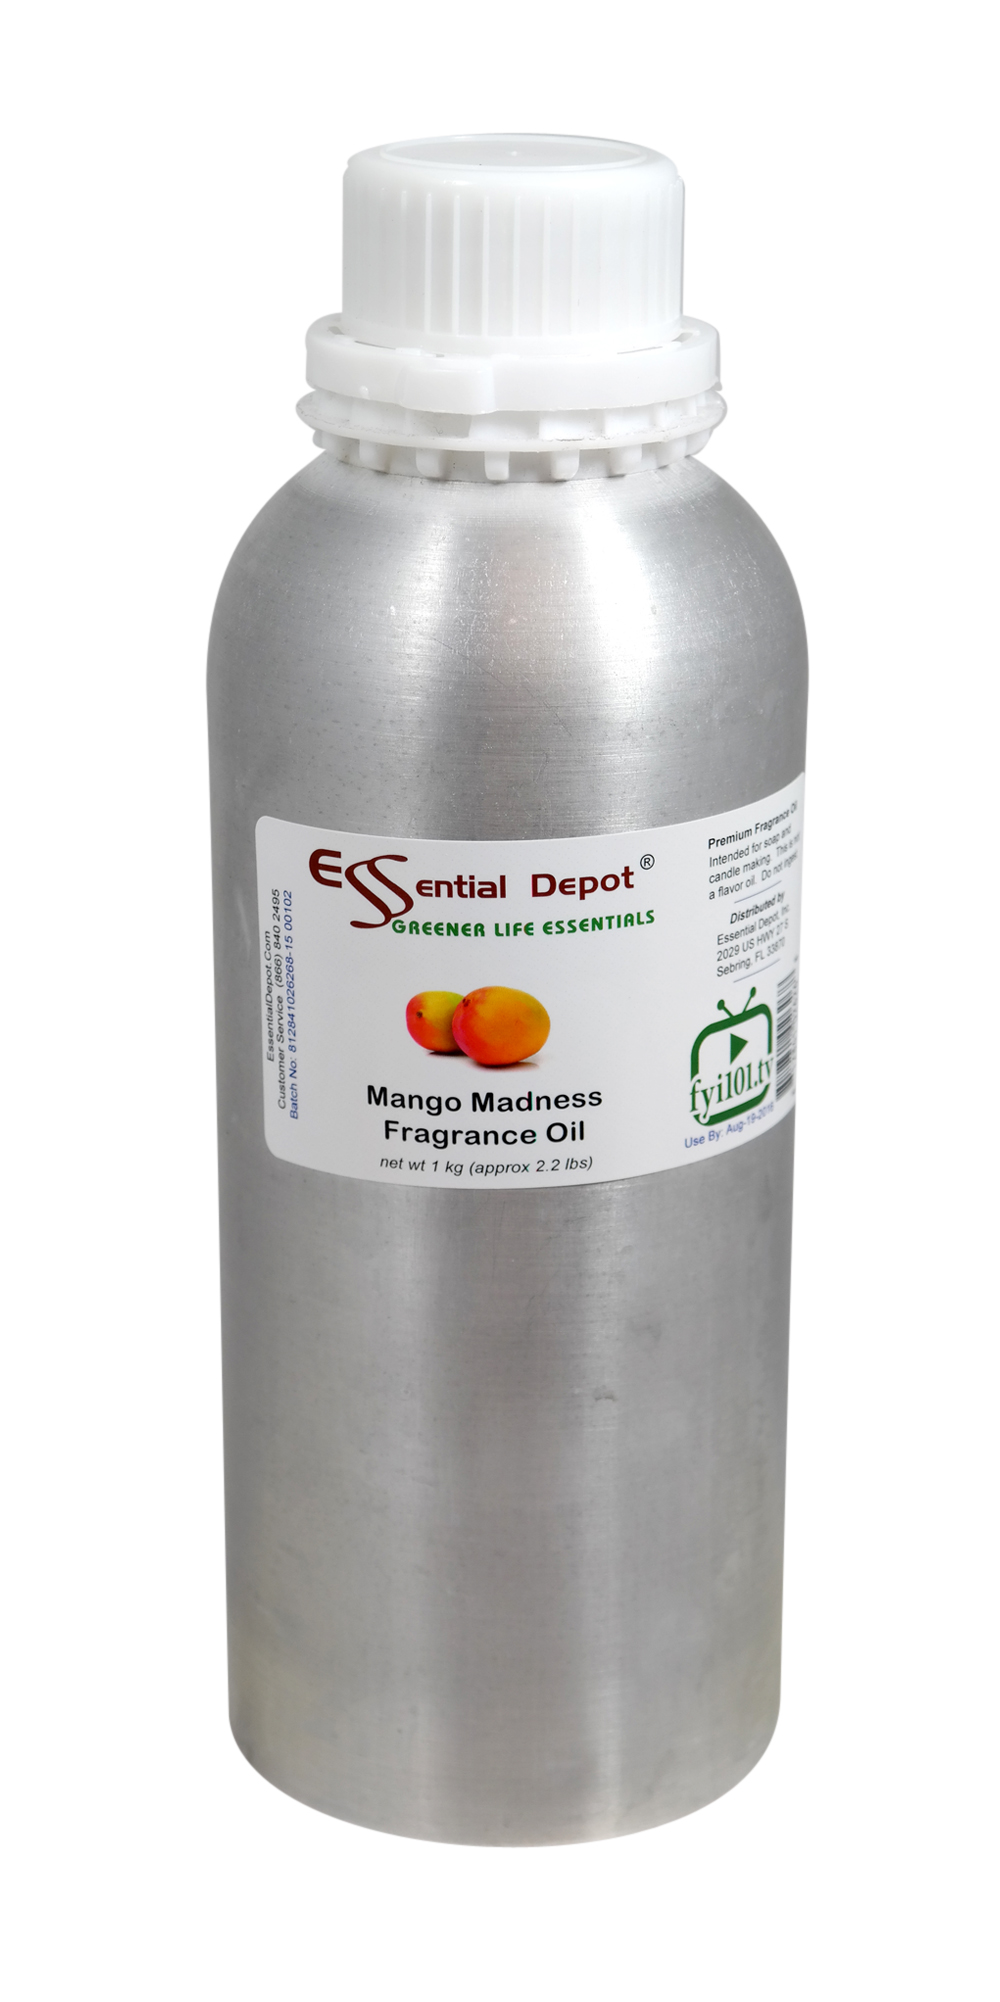 Mango Madness Fragrance Oil - 1 kg. - Approx 2.2 lbs. - FREE US SHIPPING